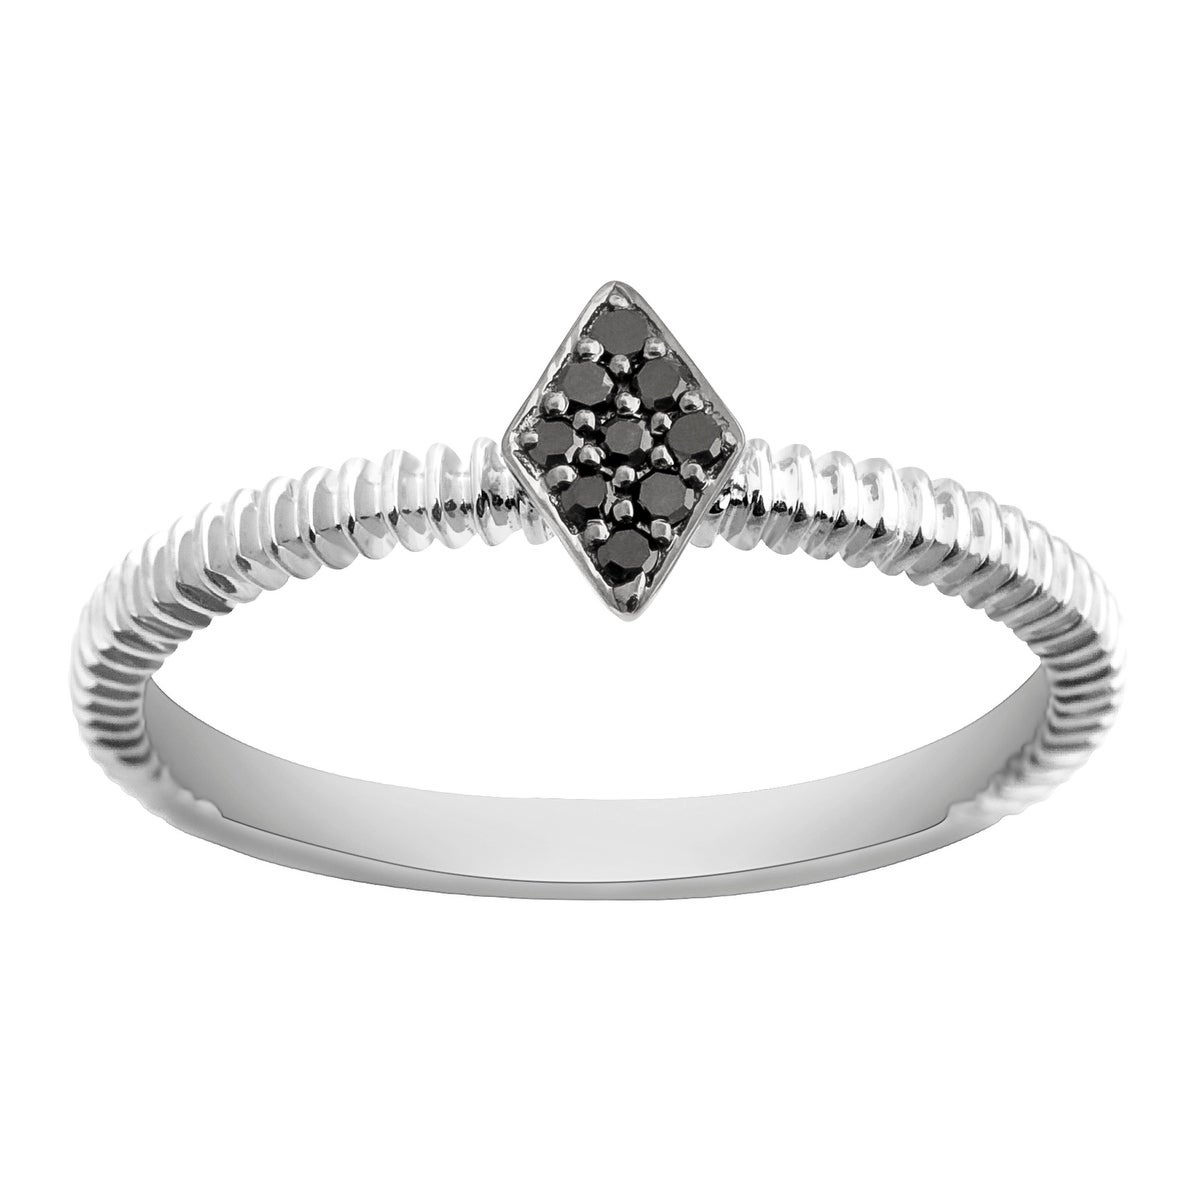 Prism Jewel 0.06Ct Round Black Diamond Stylist Ring - Thumbnail 0